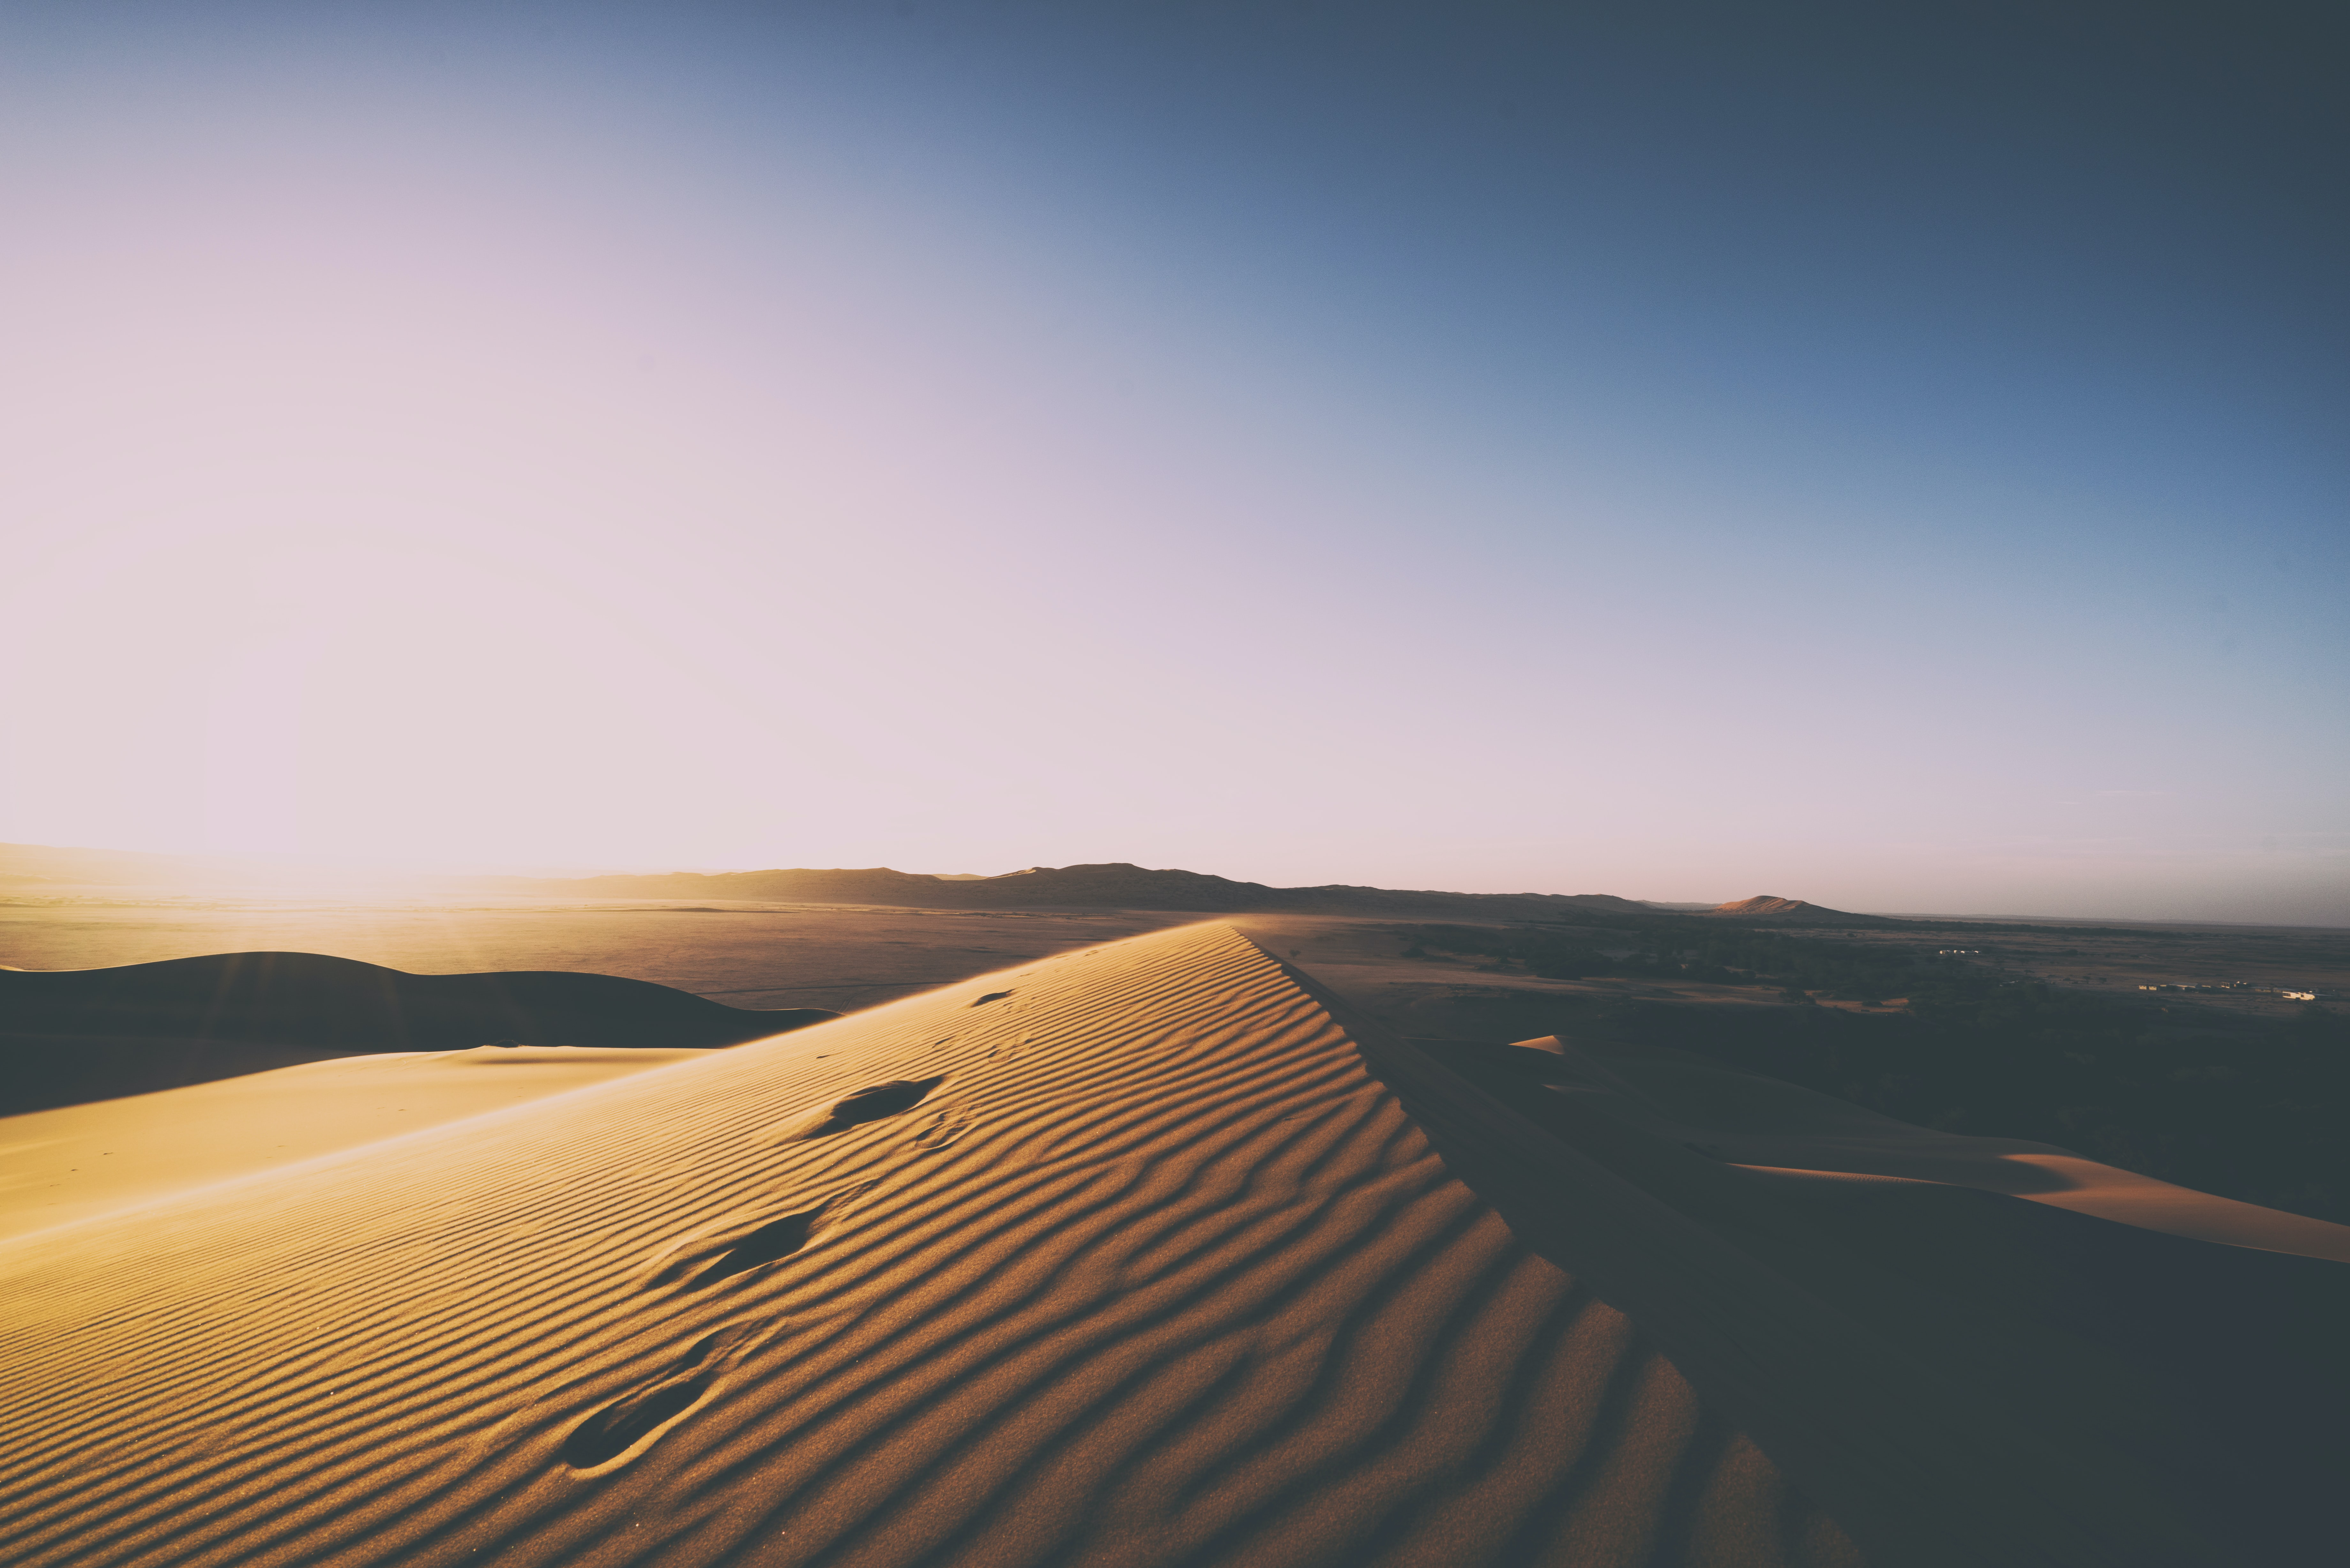 The story begins when there were two friends walking in the desert, during the trip the two friends argued and slapped one of the other friends on the face. stories